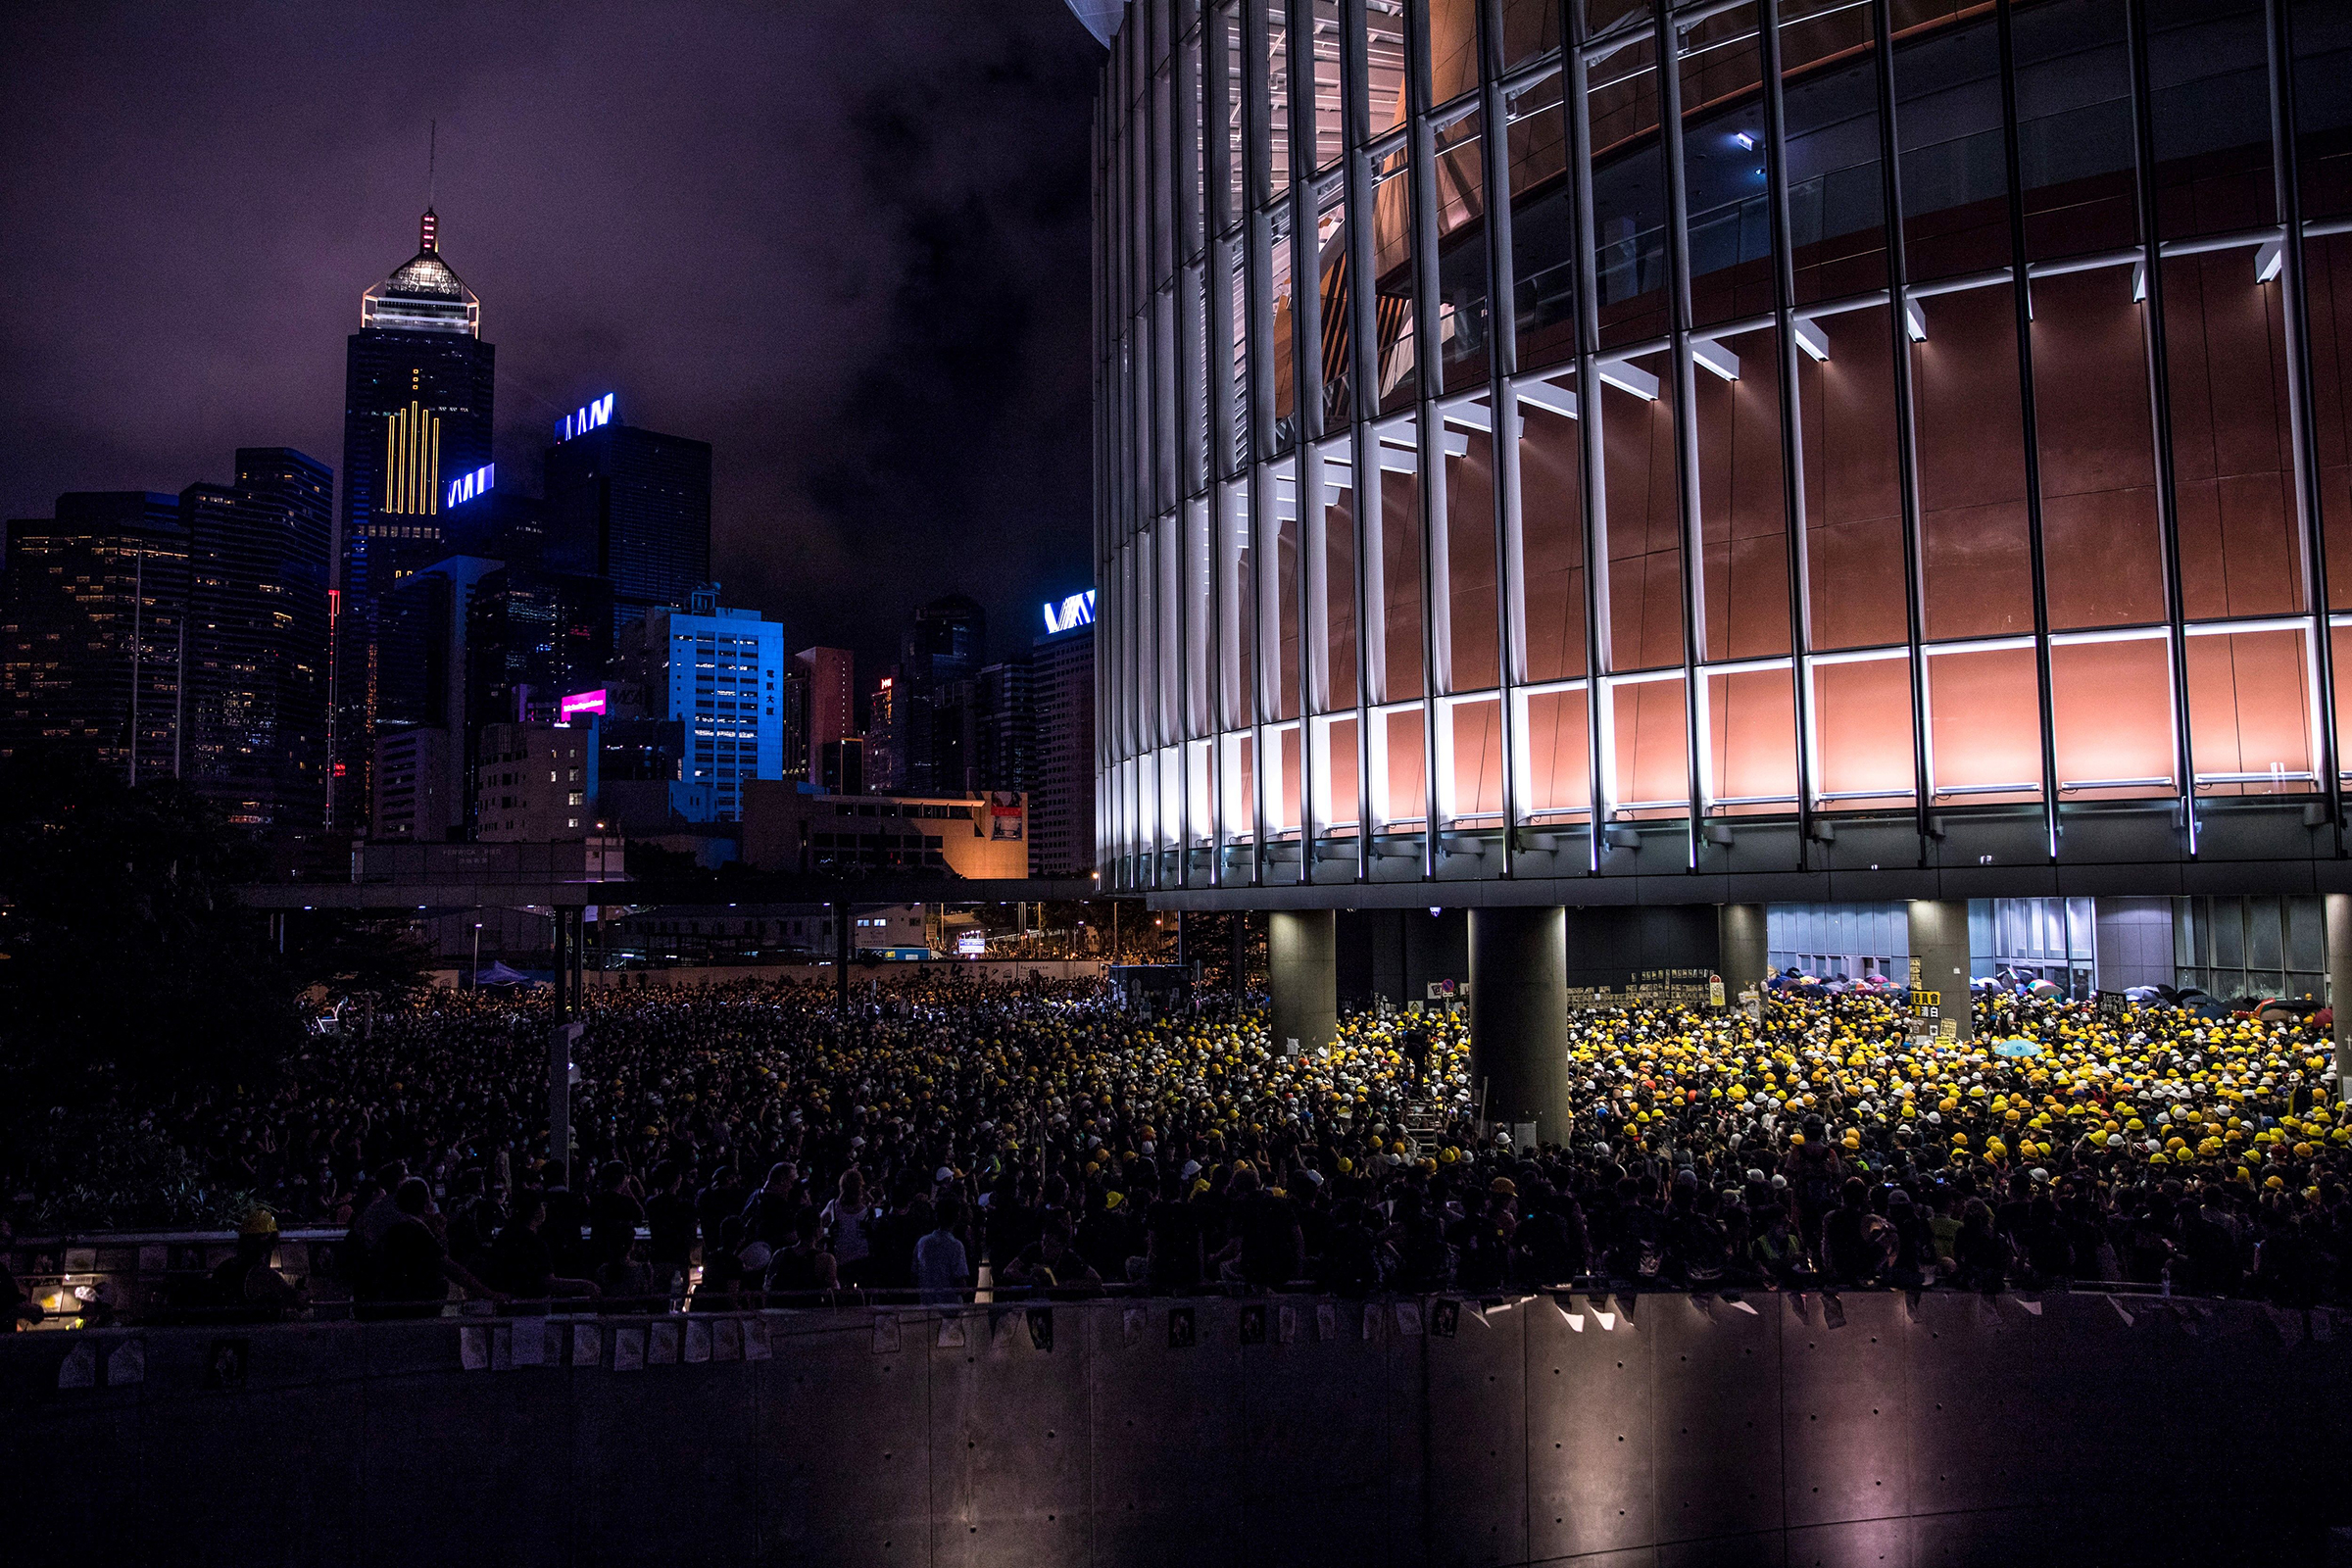 Protesters gathered outside the government headquarters in Hong Kong on July 1, 2019, on the 22nd anniversary of the city's handover from Britain to China.